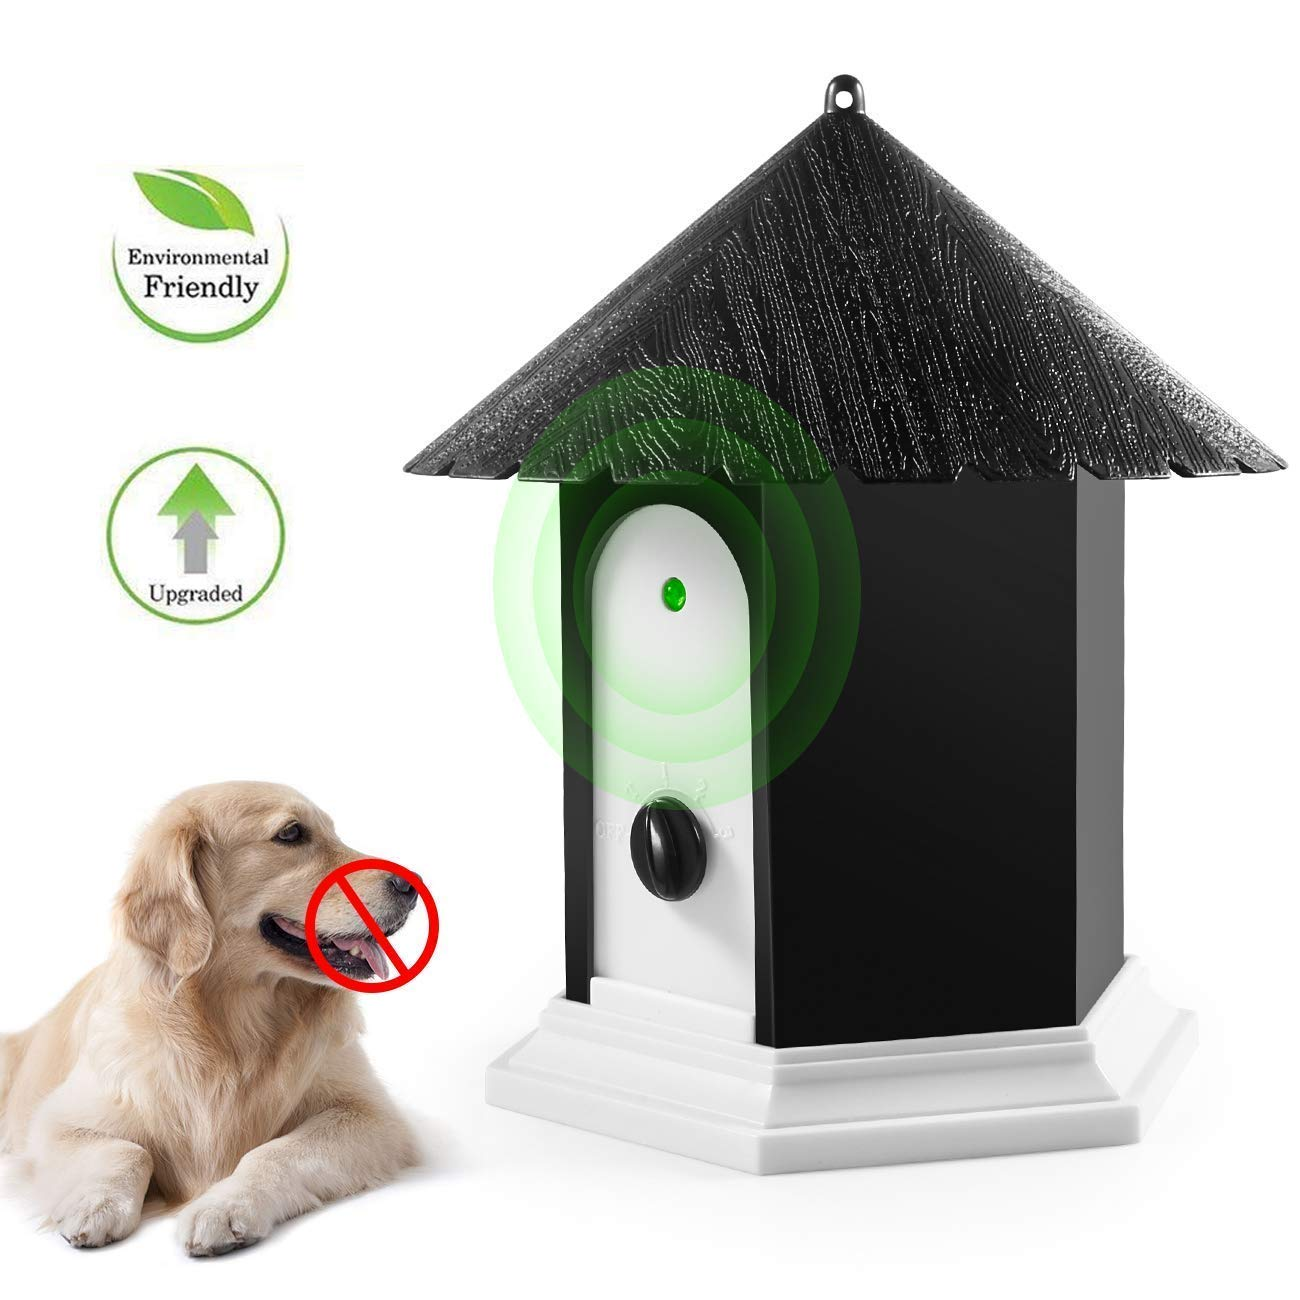 Anti Barking Device, Bark Box Dog Barking Control Devices, Ultrasonic Sonic Dog Repellent Anti Bark Deterrents Devices, Bark Control Device, Birdhouse Barking Deterrent, Dog Repellent, Bark Control by Ankuwa